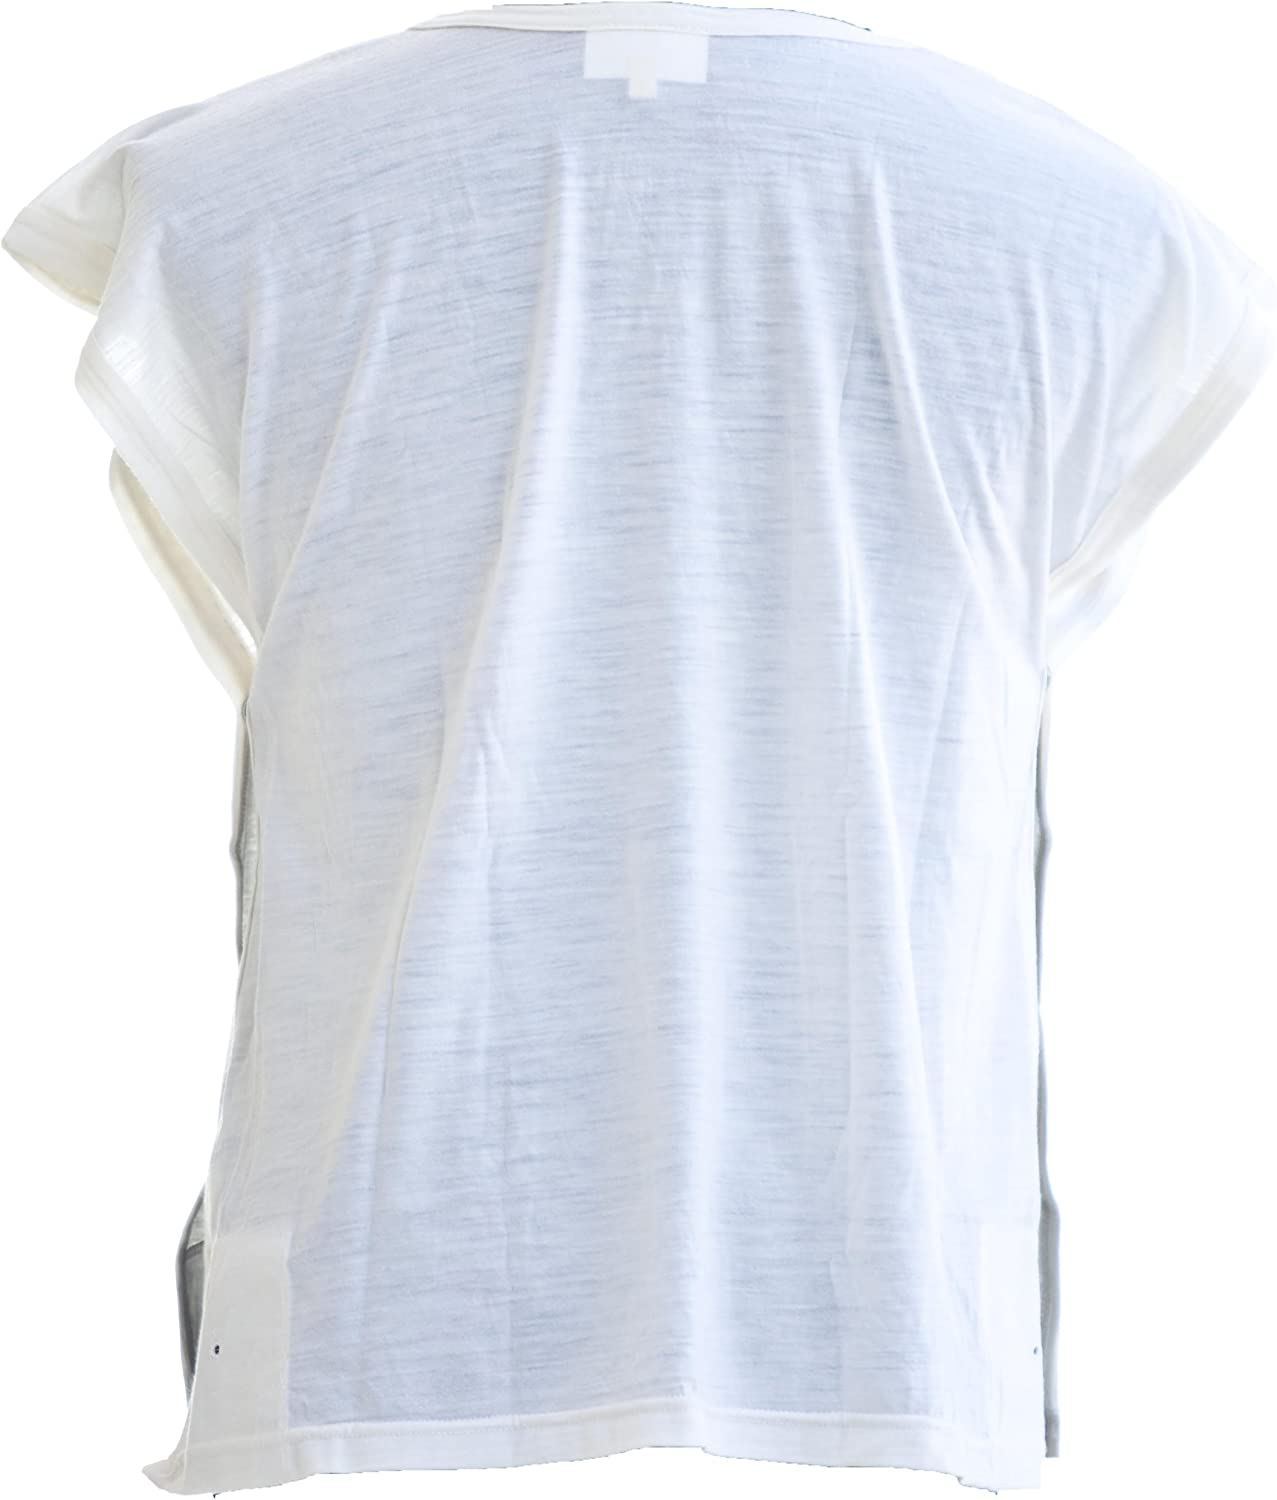 Zion Judaica 100/% Cotton Comfortable Quality T-Shirt Tzitzis Garment Certified Kosher Imported from Israel